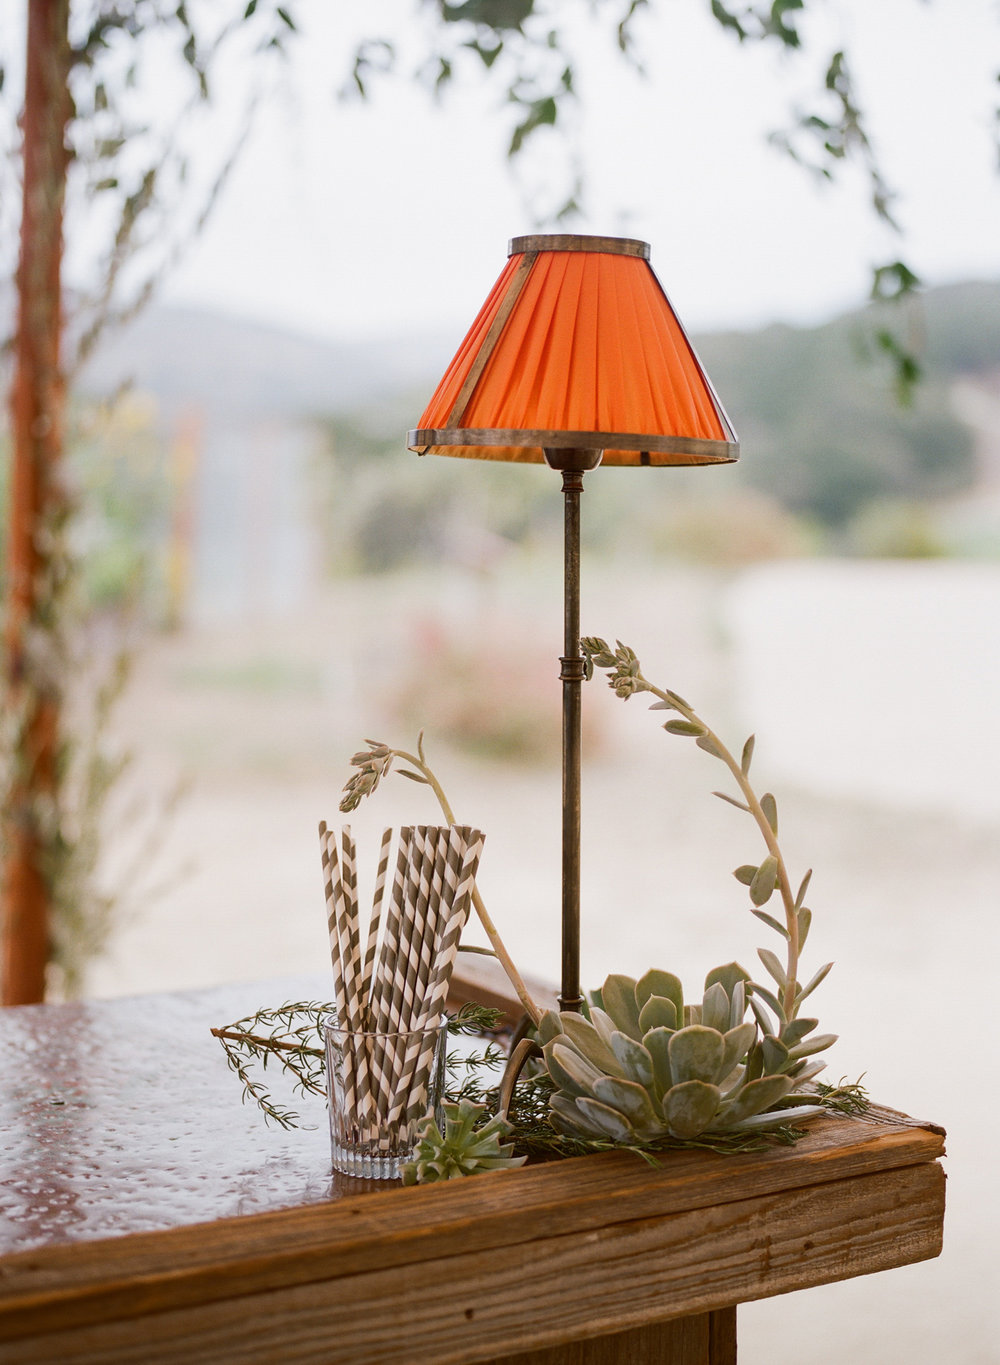 32-outdoor-lamp-orange.jpg